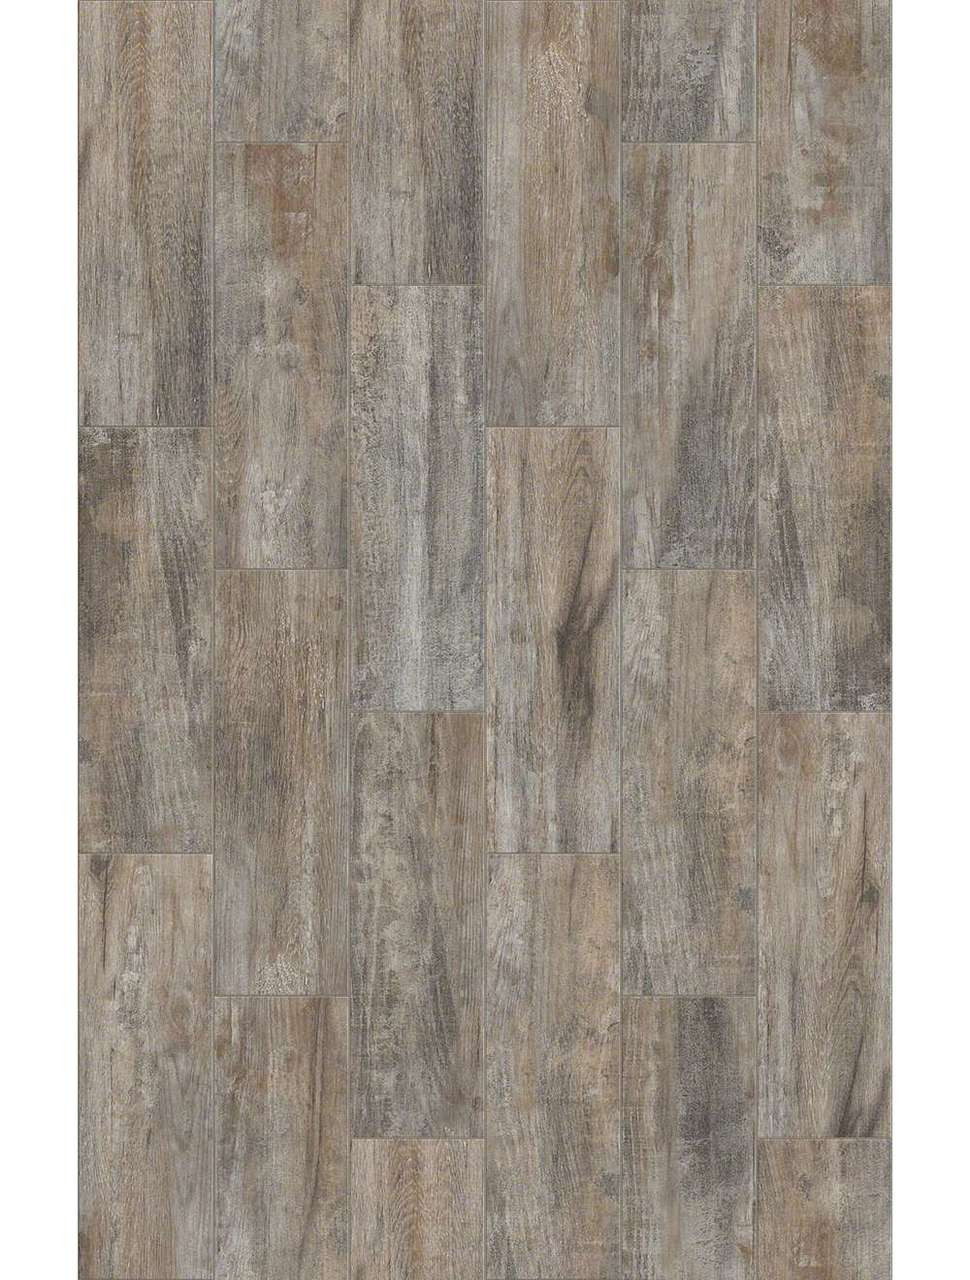 Shaw Olympia Ash 8 X 36 Glazed Ceramic Floor Tile Regal Floor